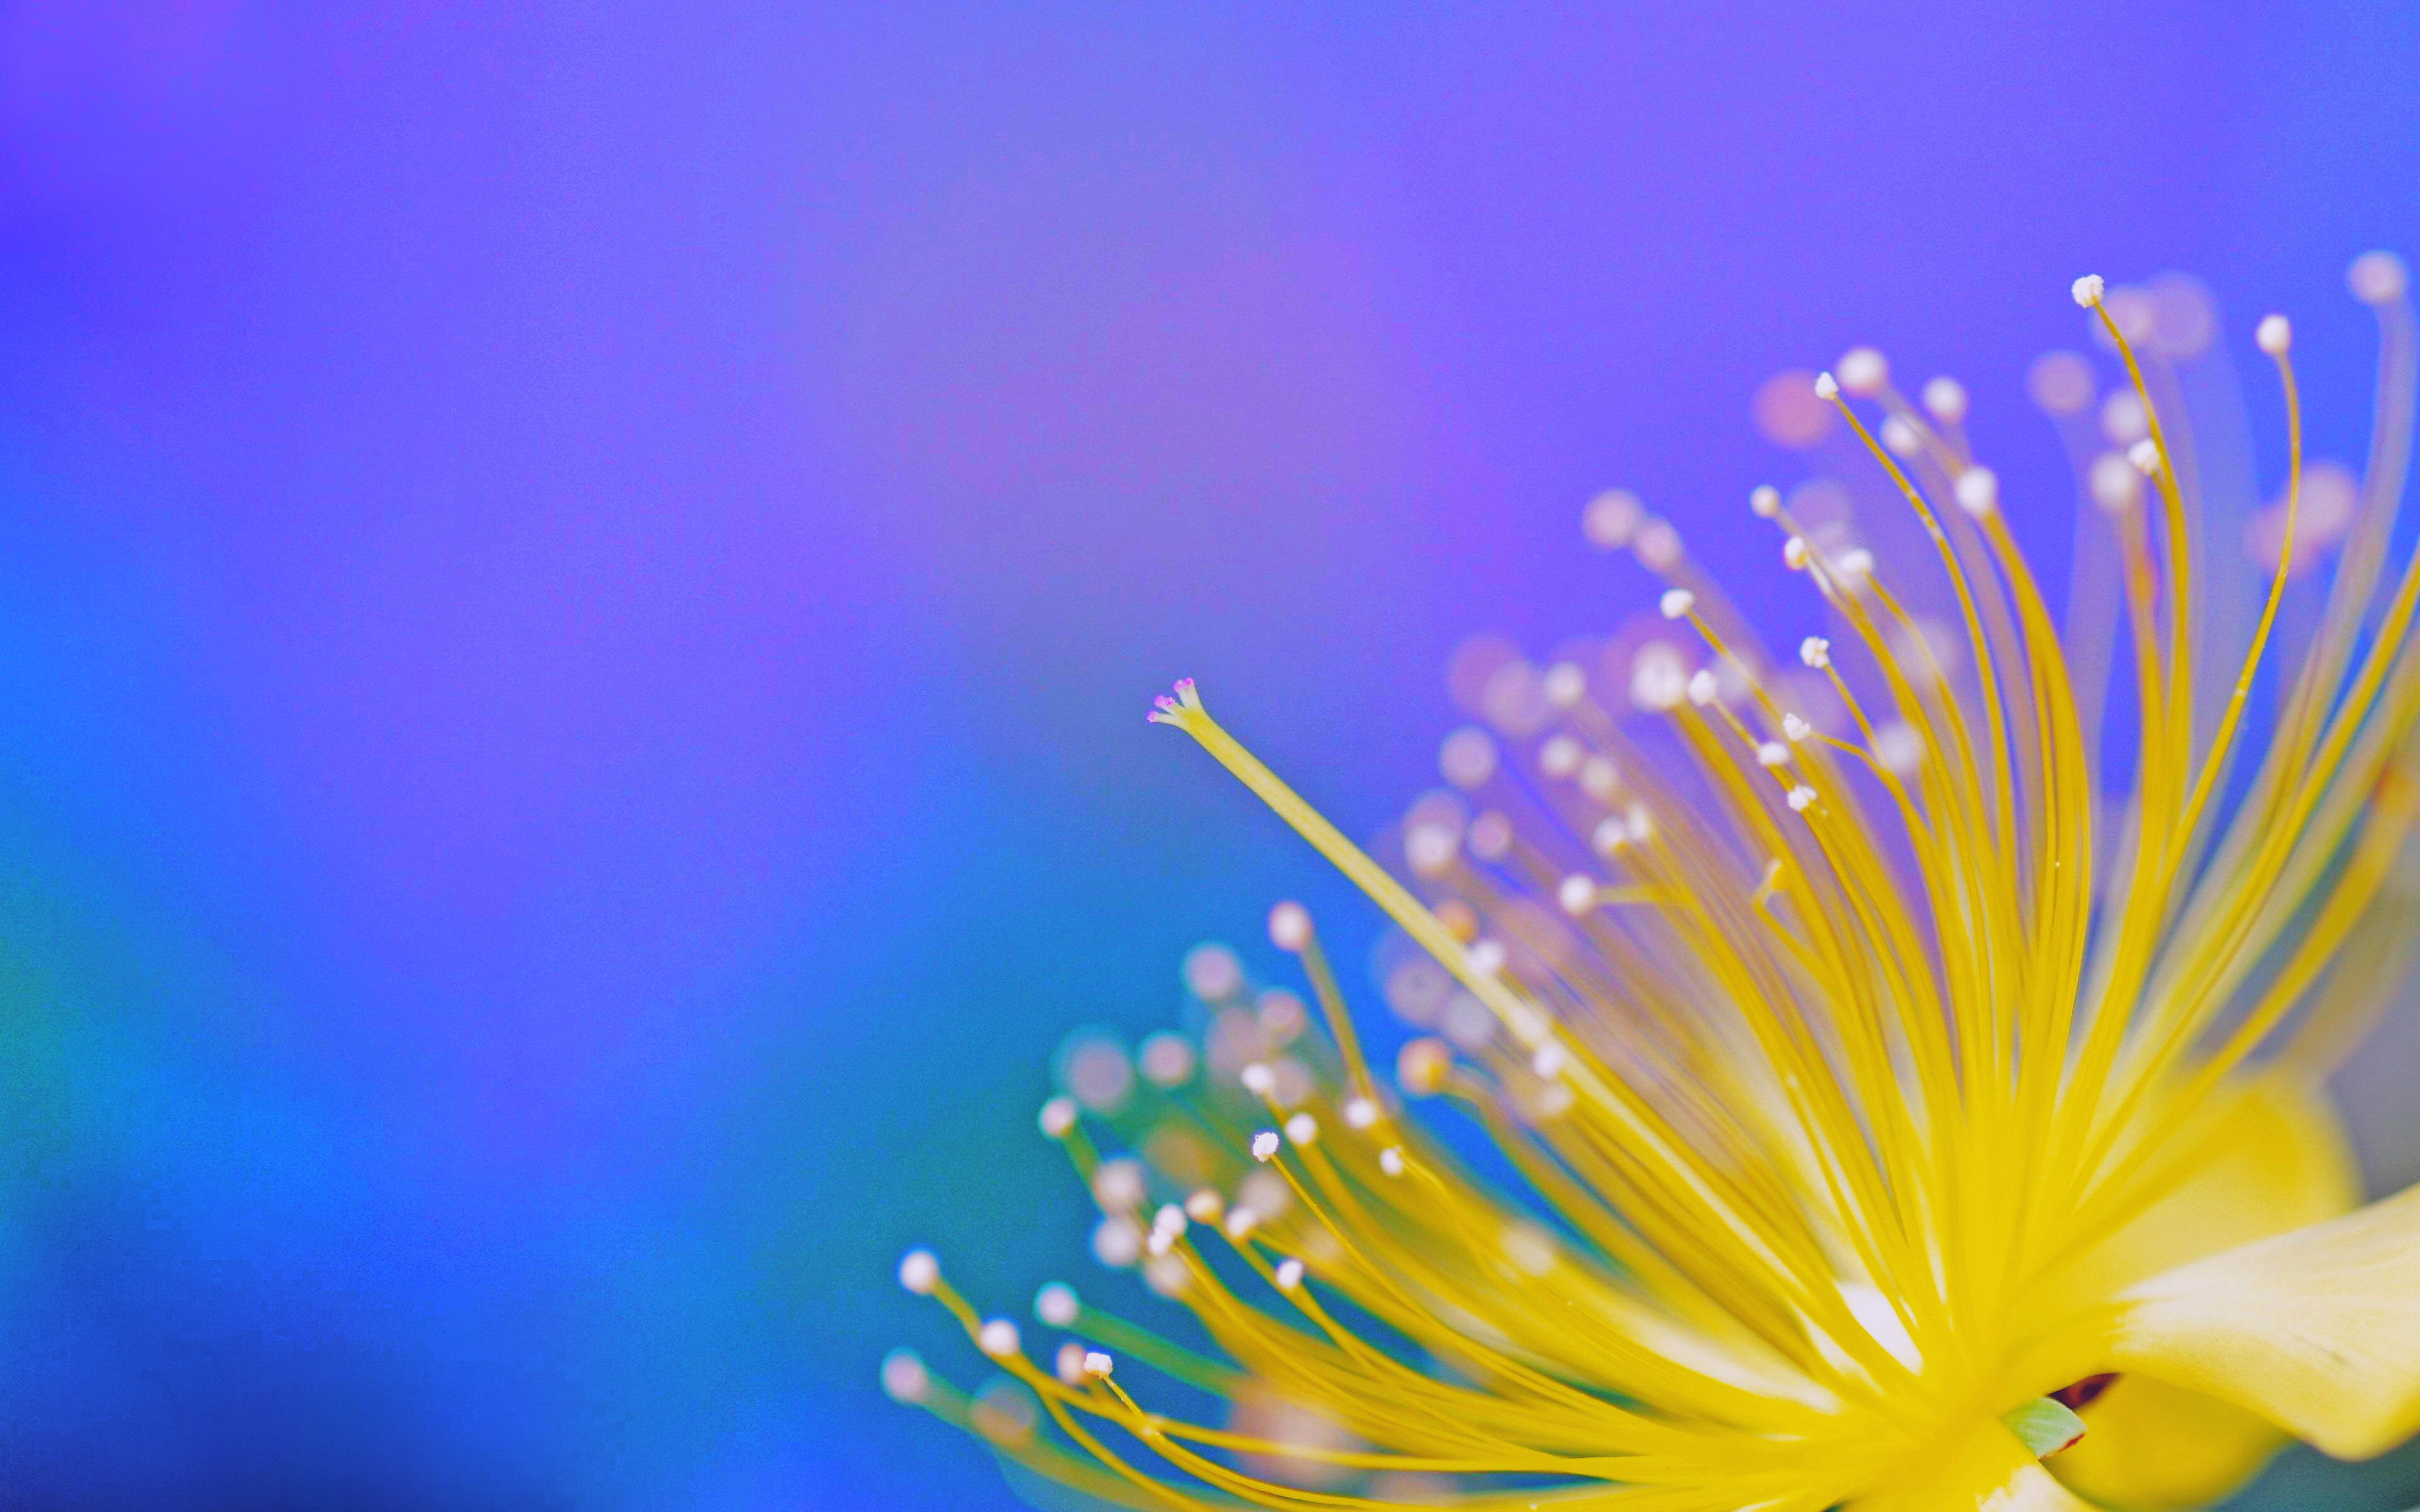 NATURE 54 colors of spring 17april2015friday VersionOne 205531 3840x2400 HIGHRES 4k ...